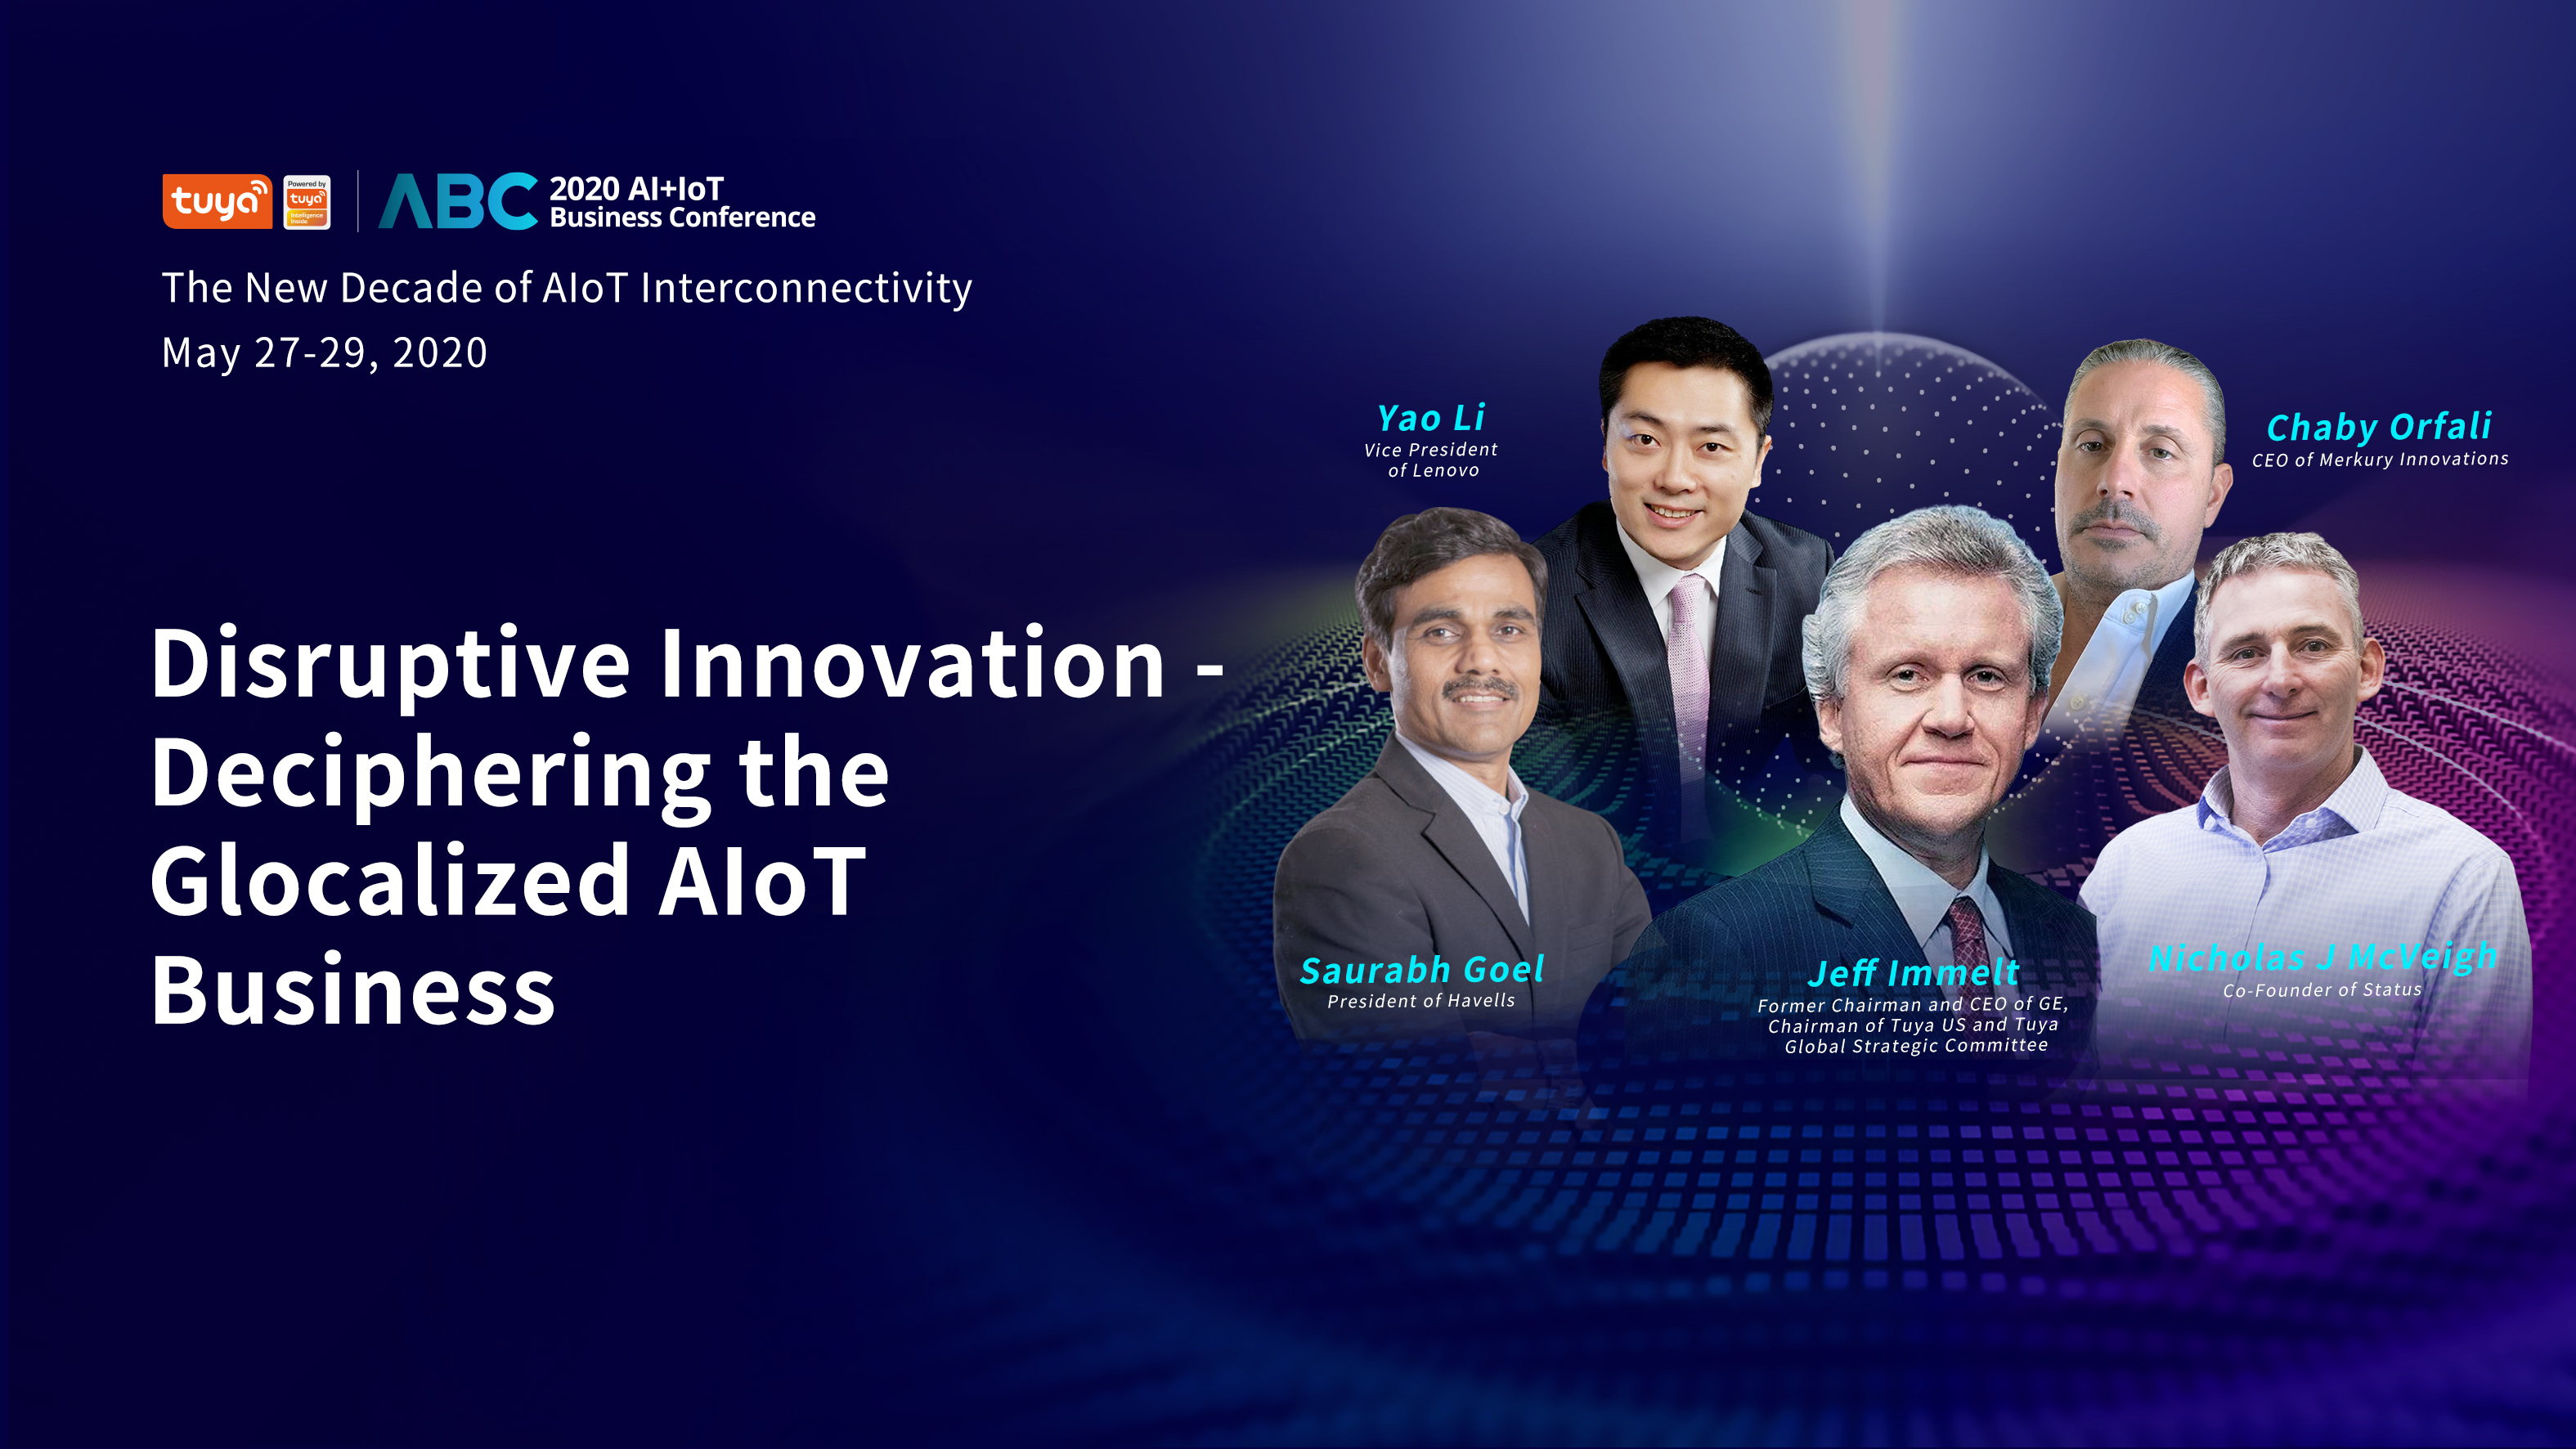 AI+IoT Business Conference